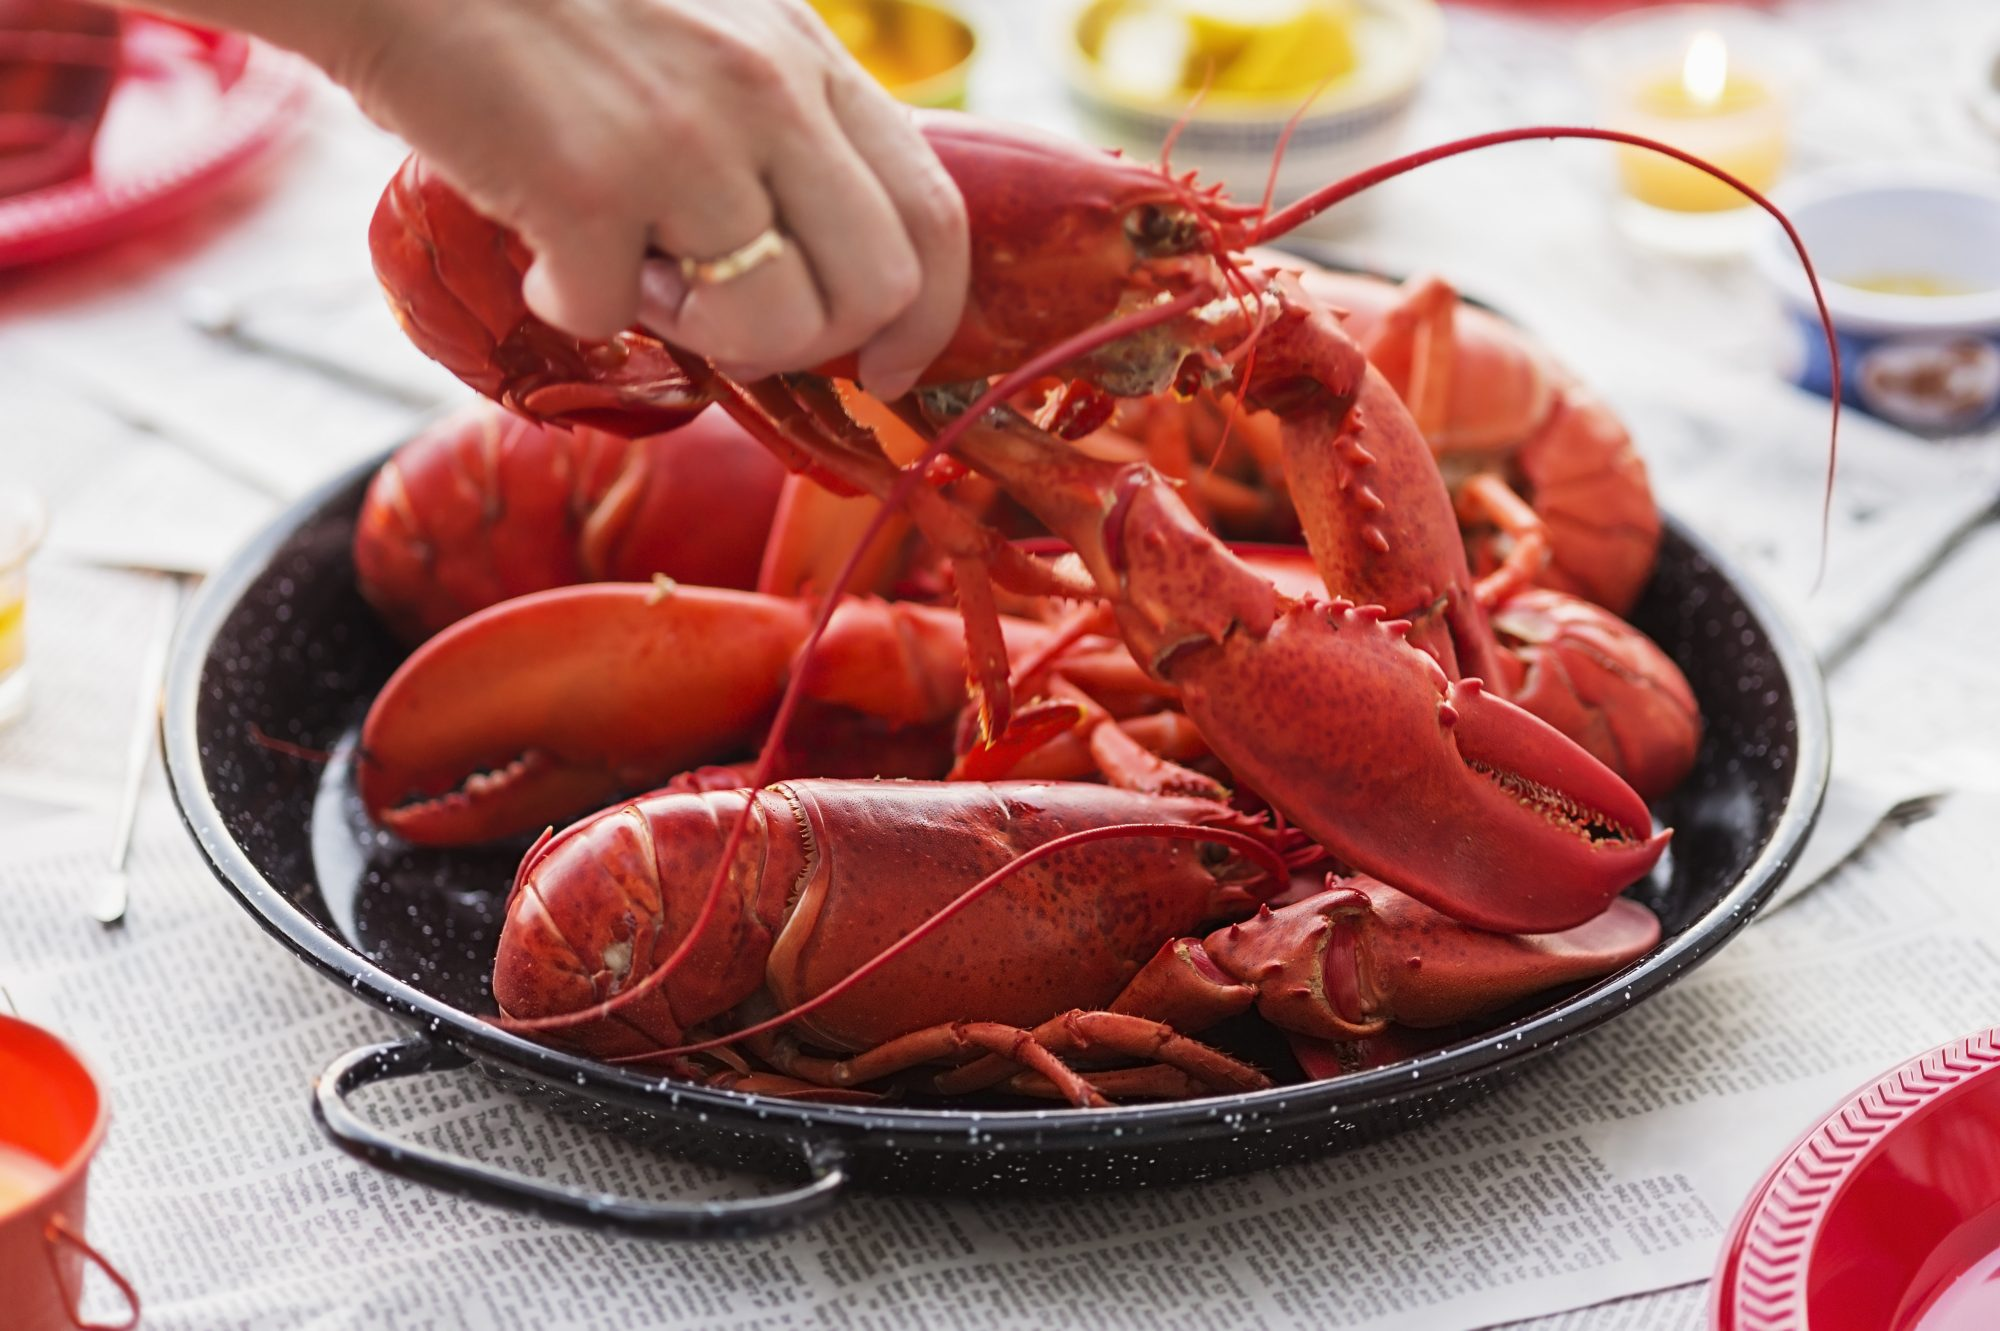 Person taking a lobster from a plate